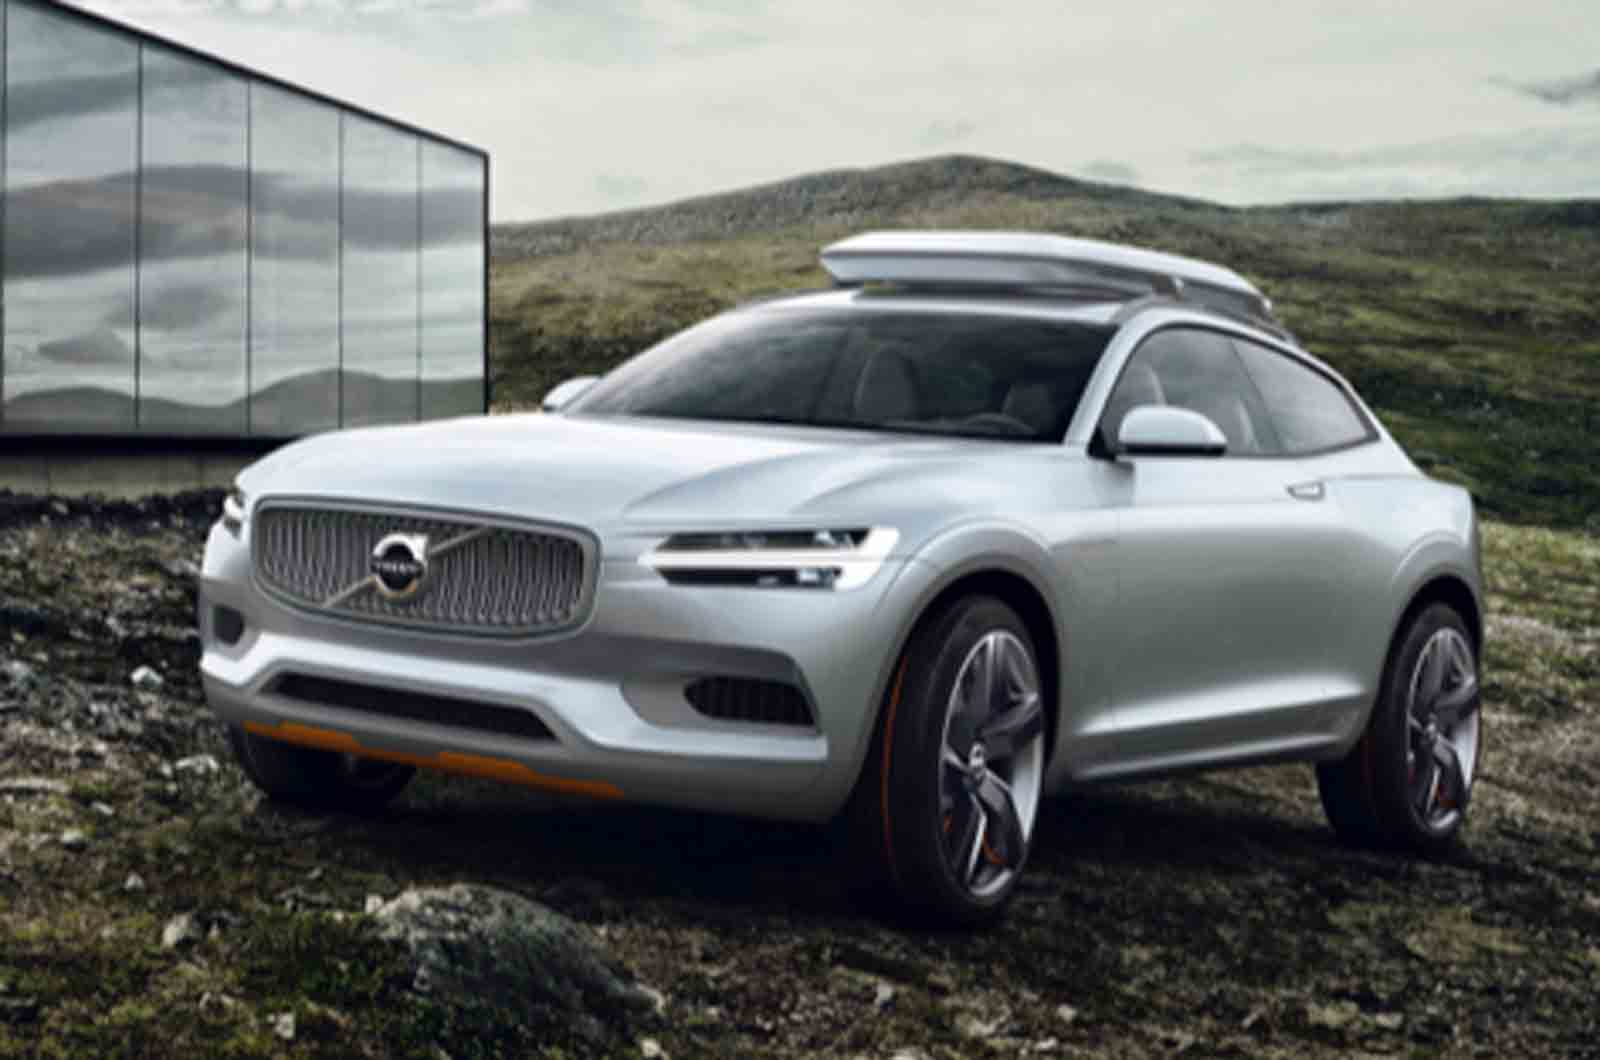 new volvo concept xc suv leaked car news suv crossovers autocar india. Black Bedroom Furniture Sets. Home Design Ideas